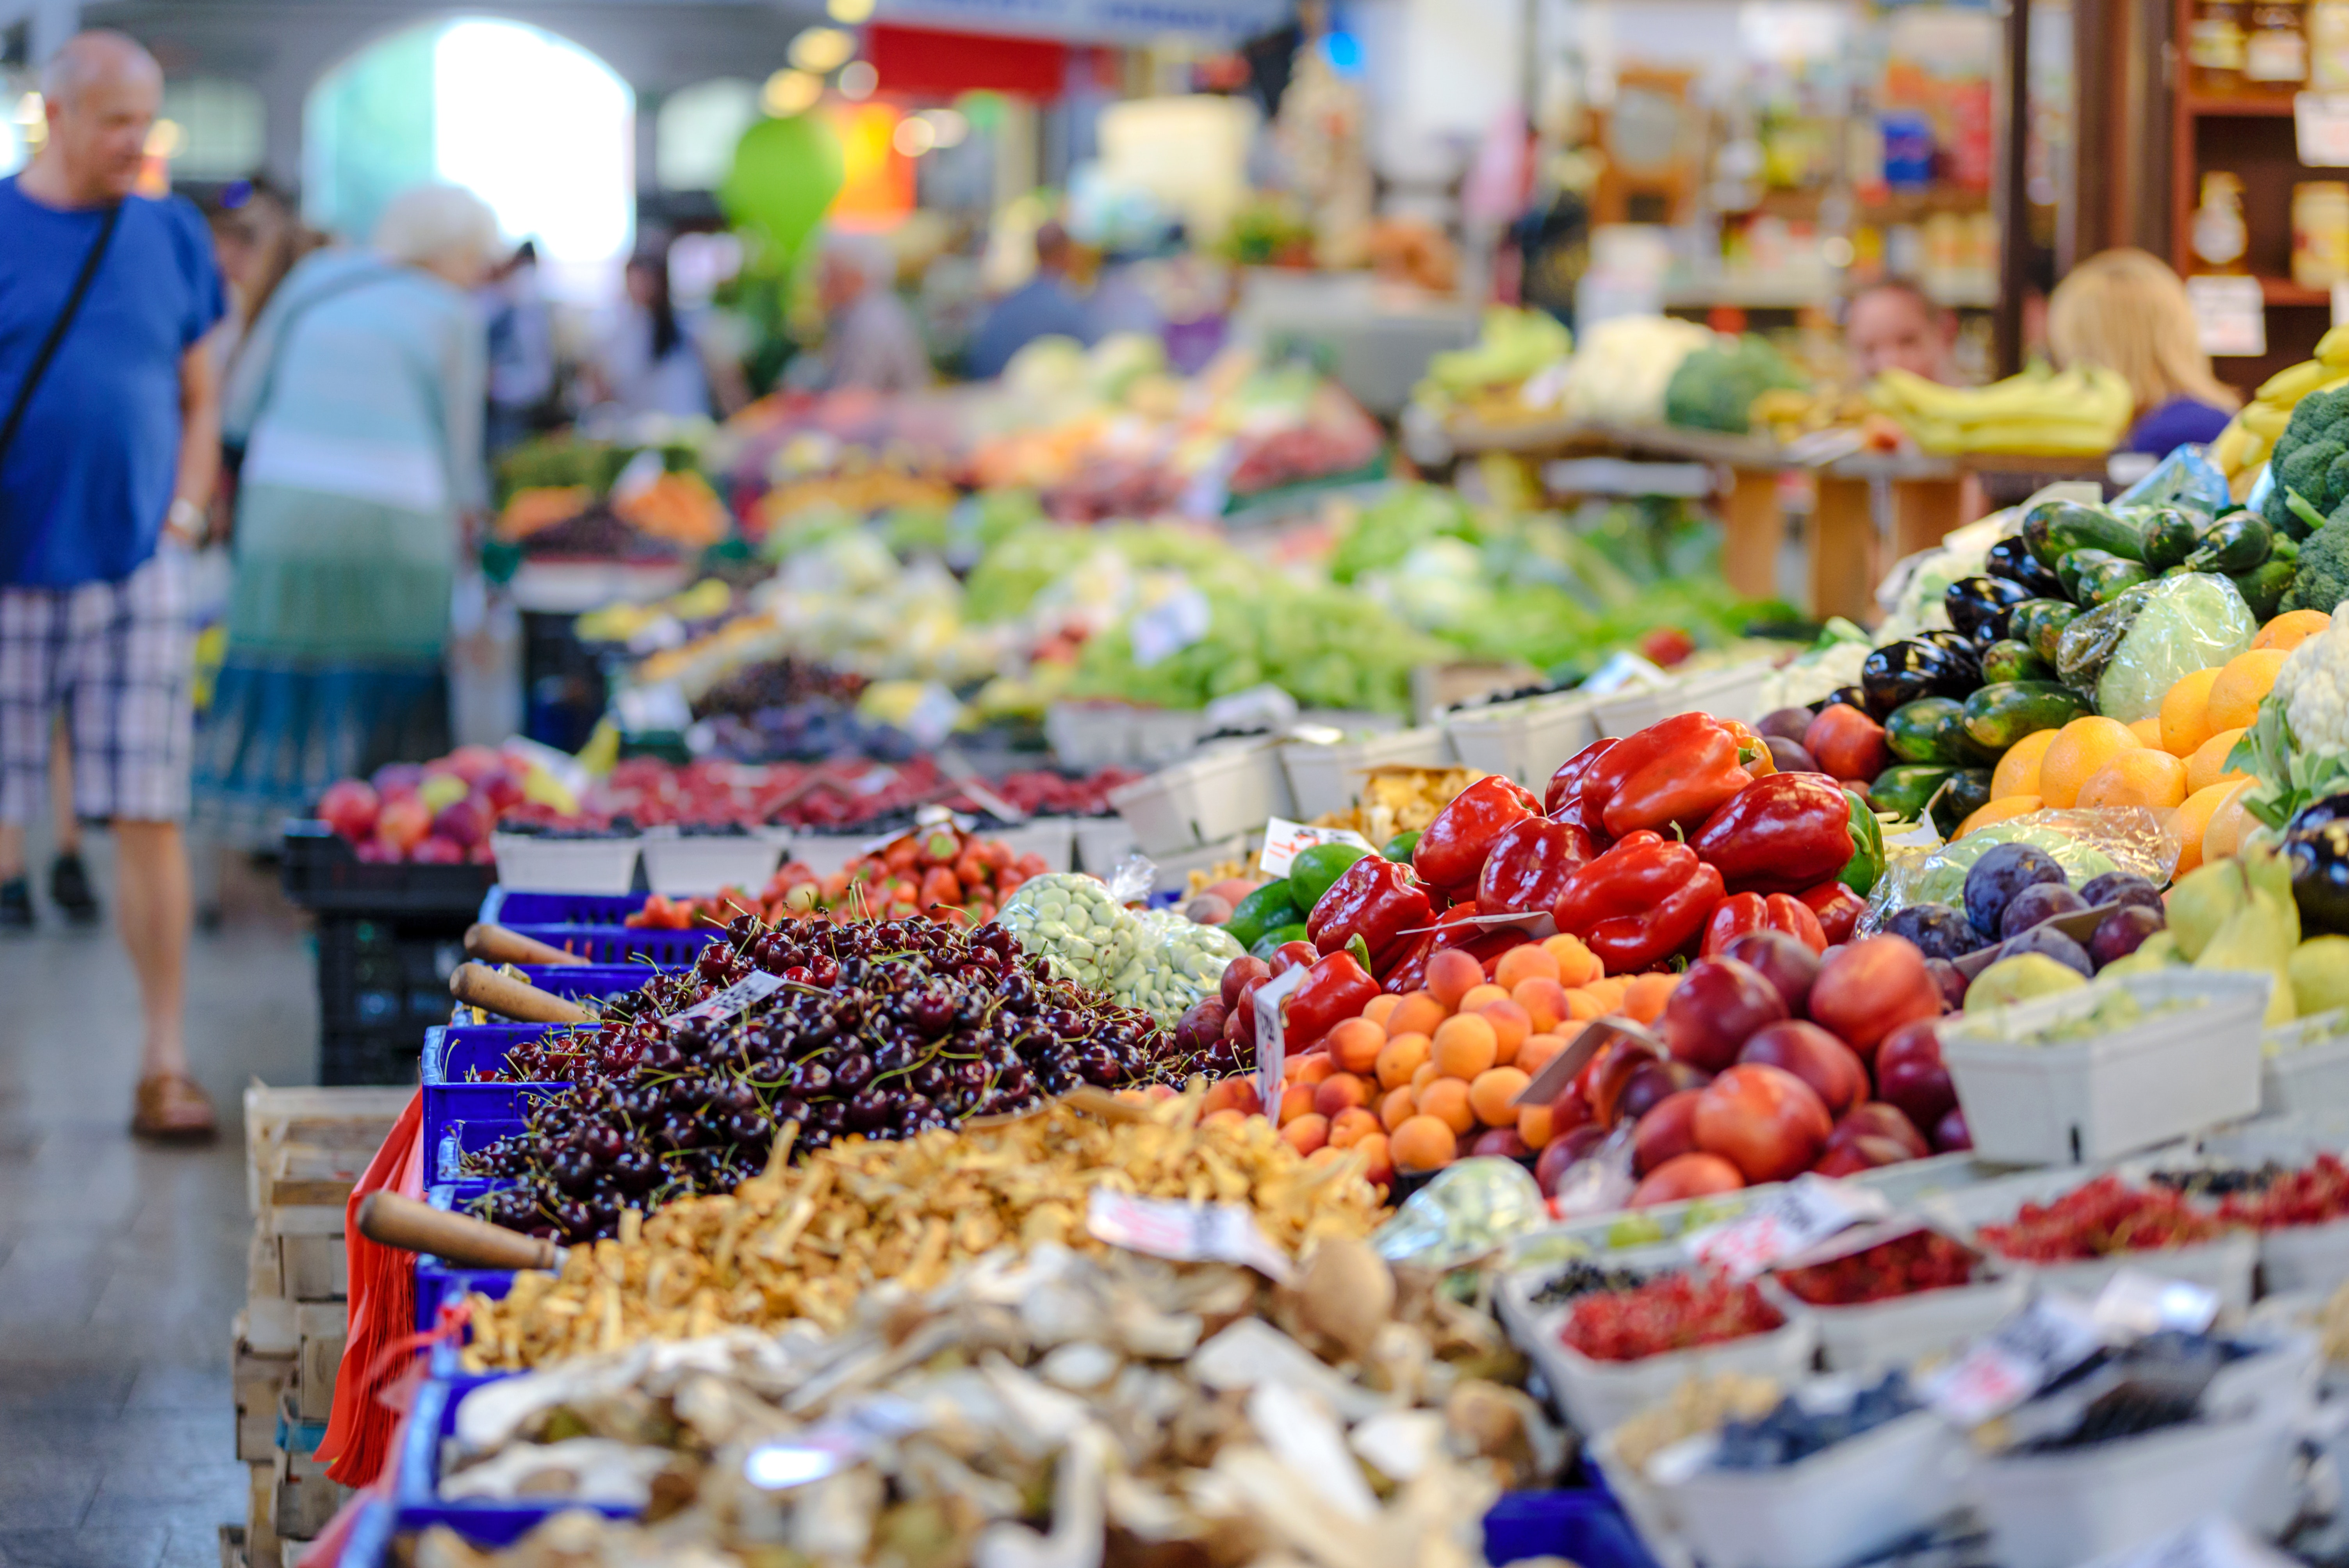 Vegetables Stall, Sales, Sell, Selling, Sale, HQ Photo